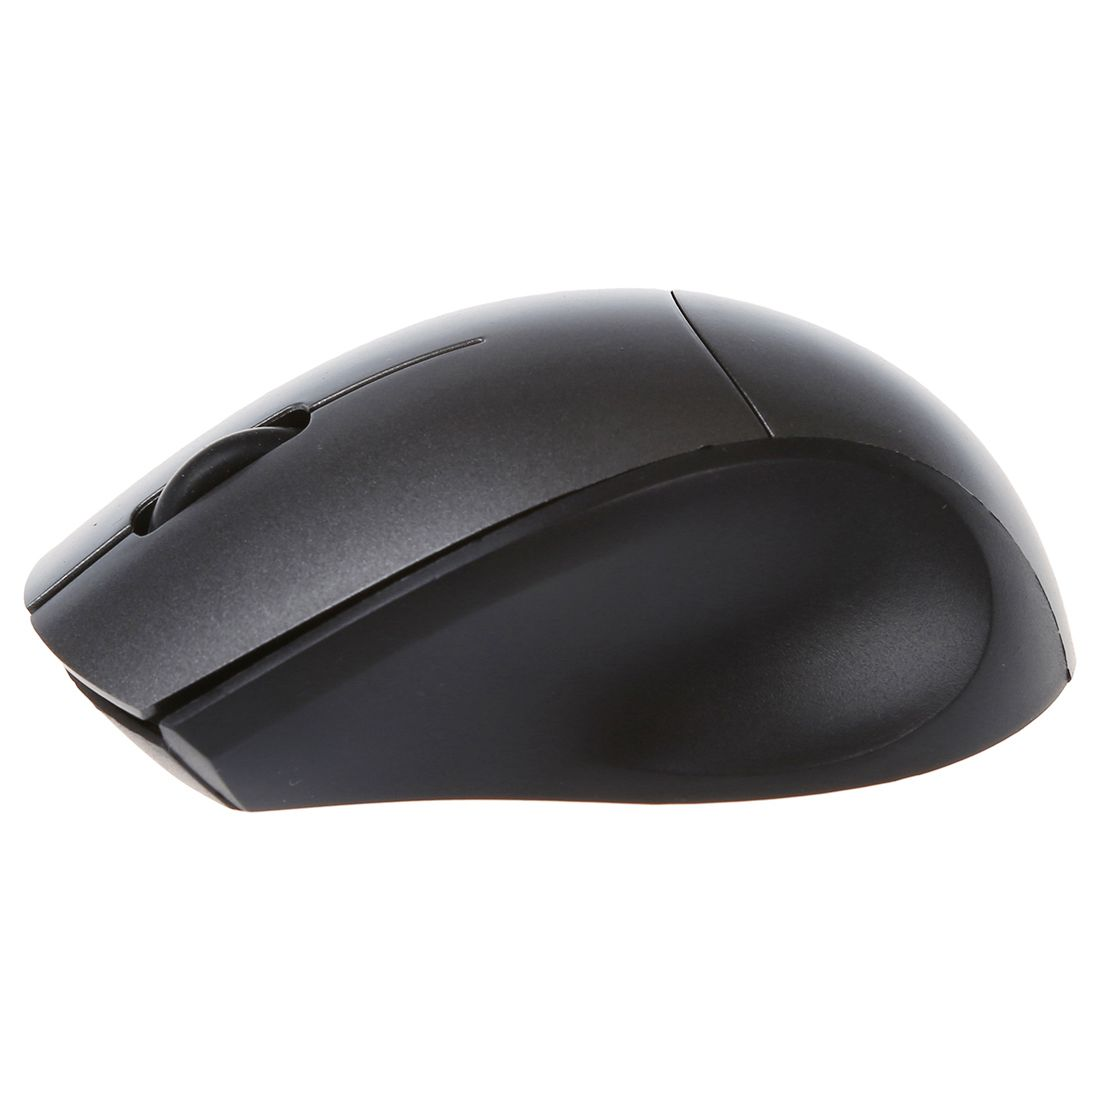 For Computer PC Laptop Wireless Mouse Optical Cordless 2.4GHz Mice + USB Receiver Grey